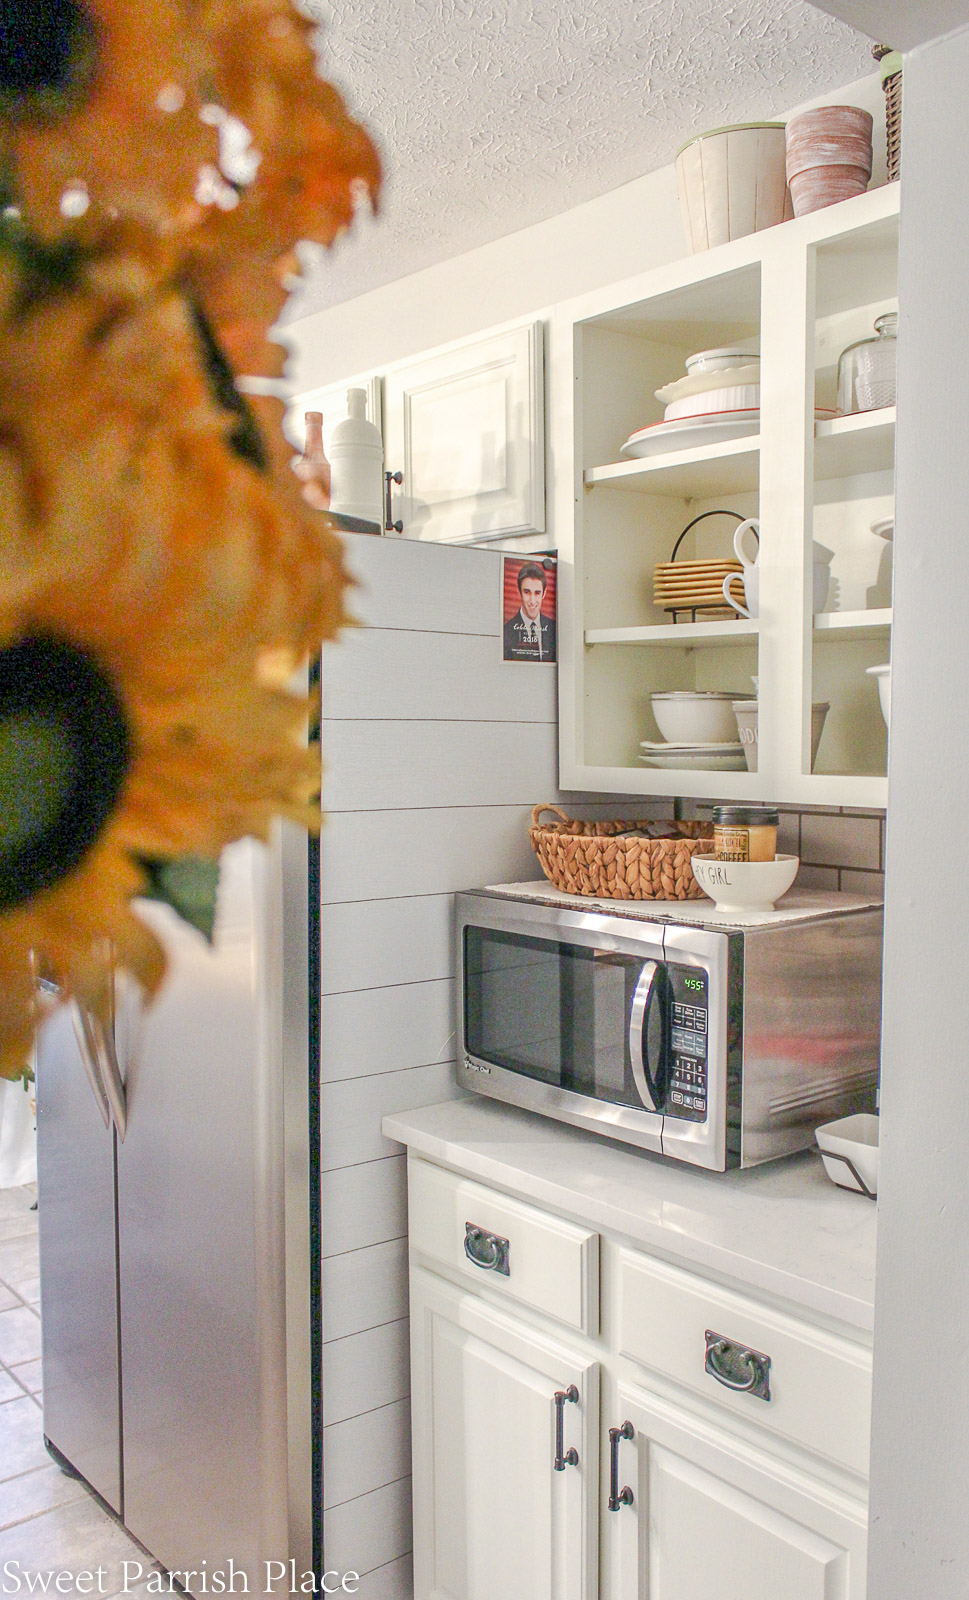 remove cabinet doors to create an open shelving concept